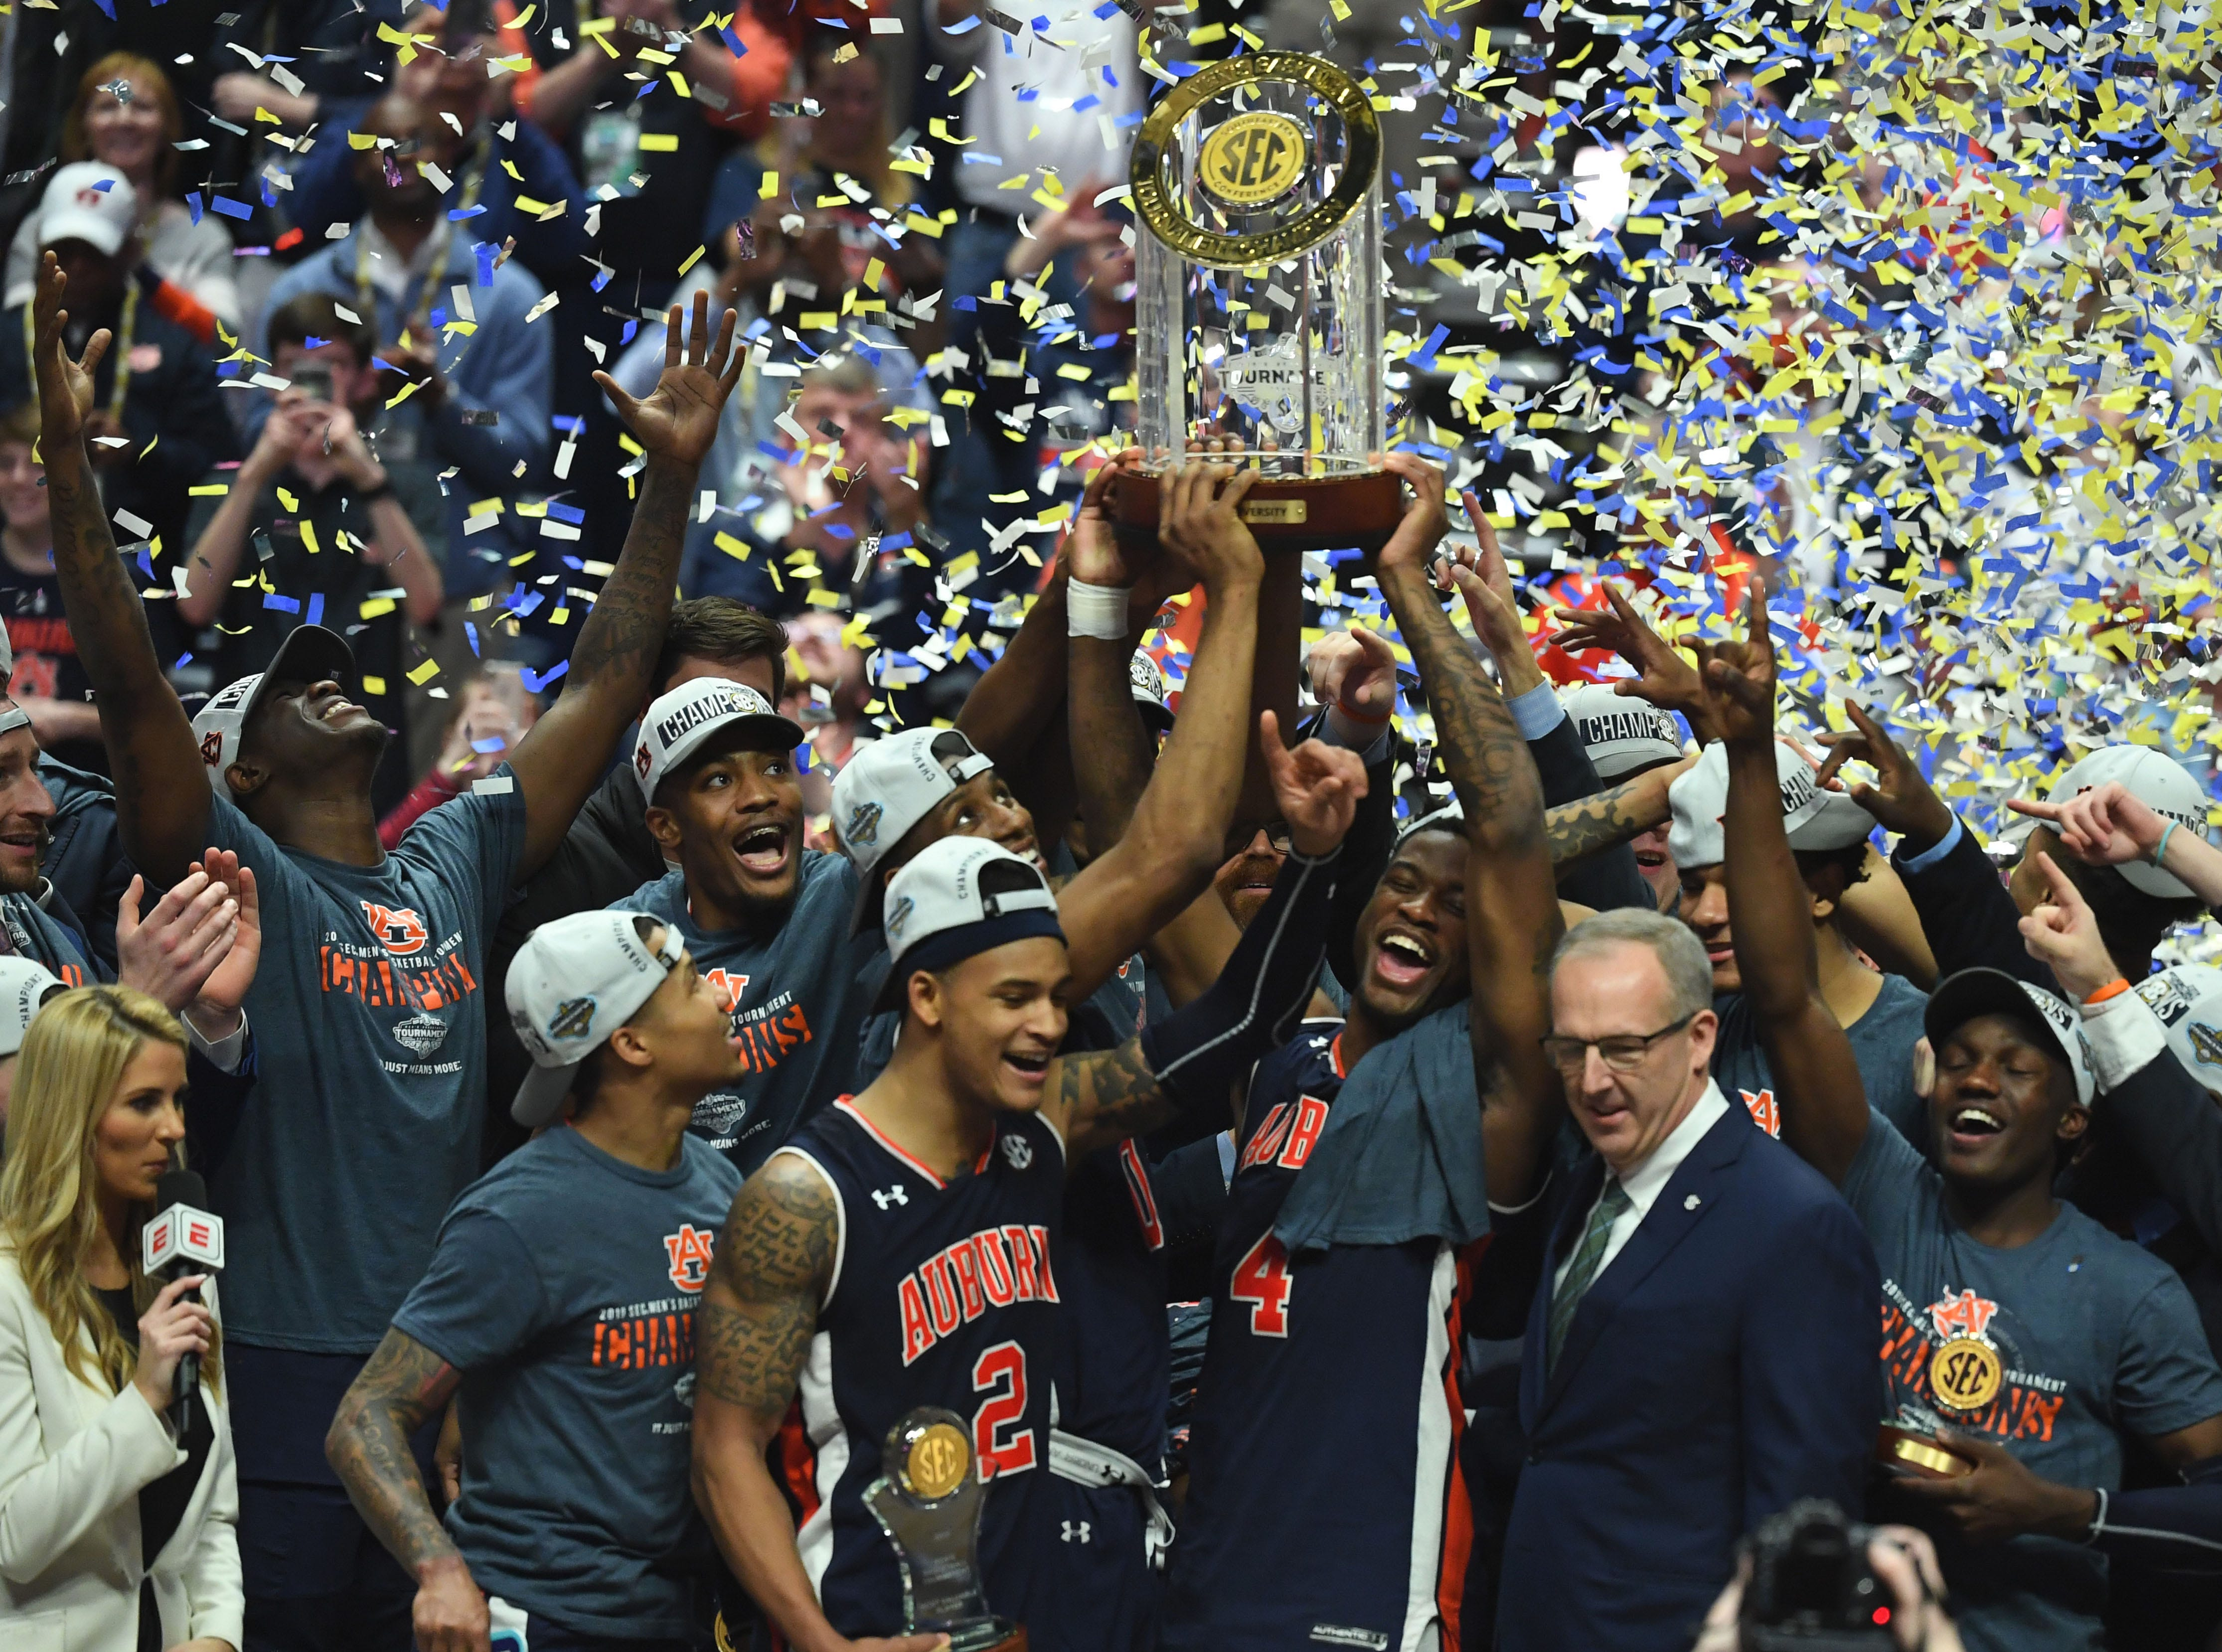 Mar 17, 2019; Nashville, TN, USA; Auburn Tigers celebrates after beating the Tennessee Volunteers in the SEC conference tournament championship game at Bridgestone Arena. Mandatory Credit: Christopher Hanewinckel-USA TODAY Sports